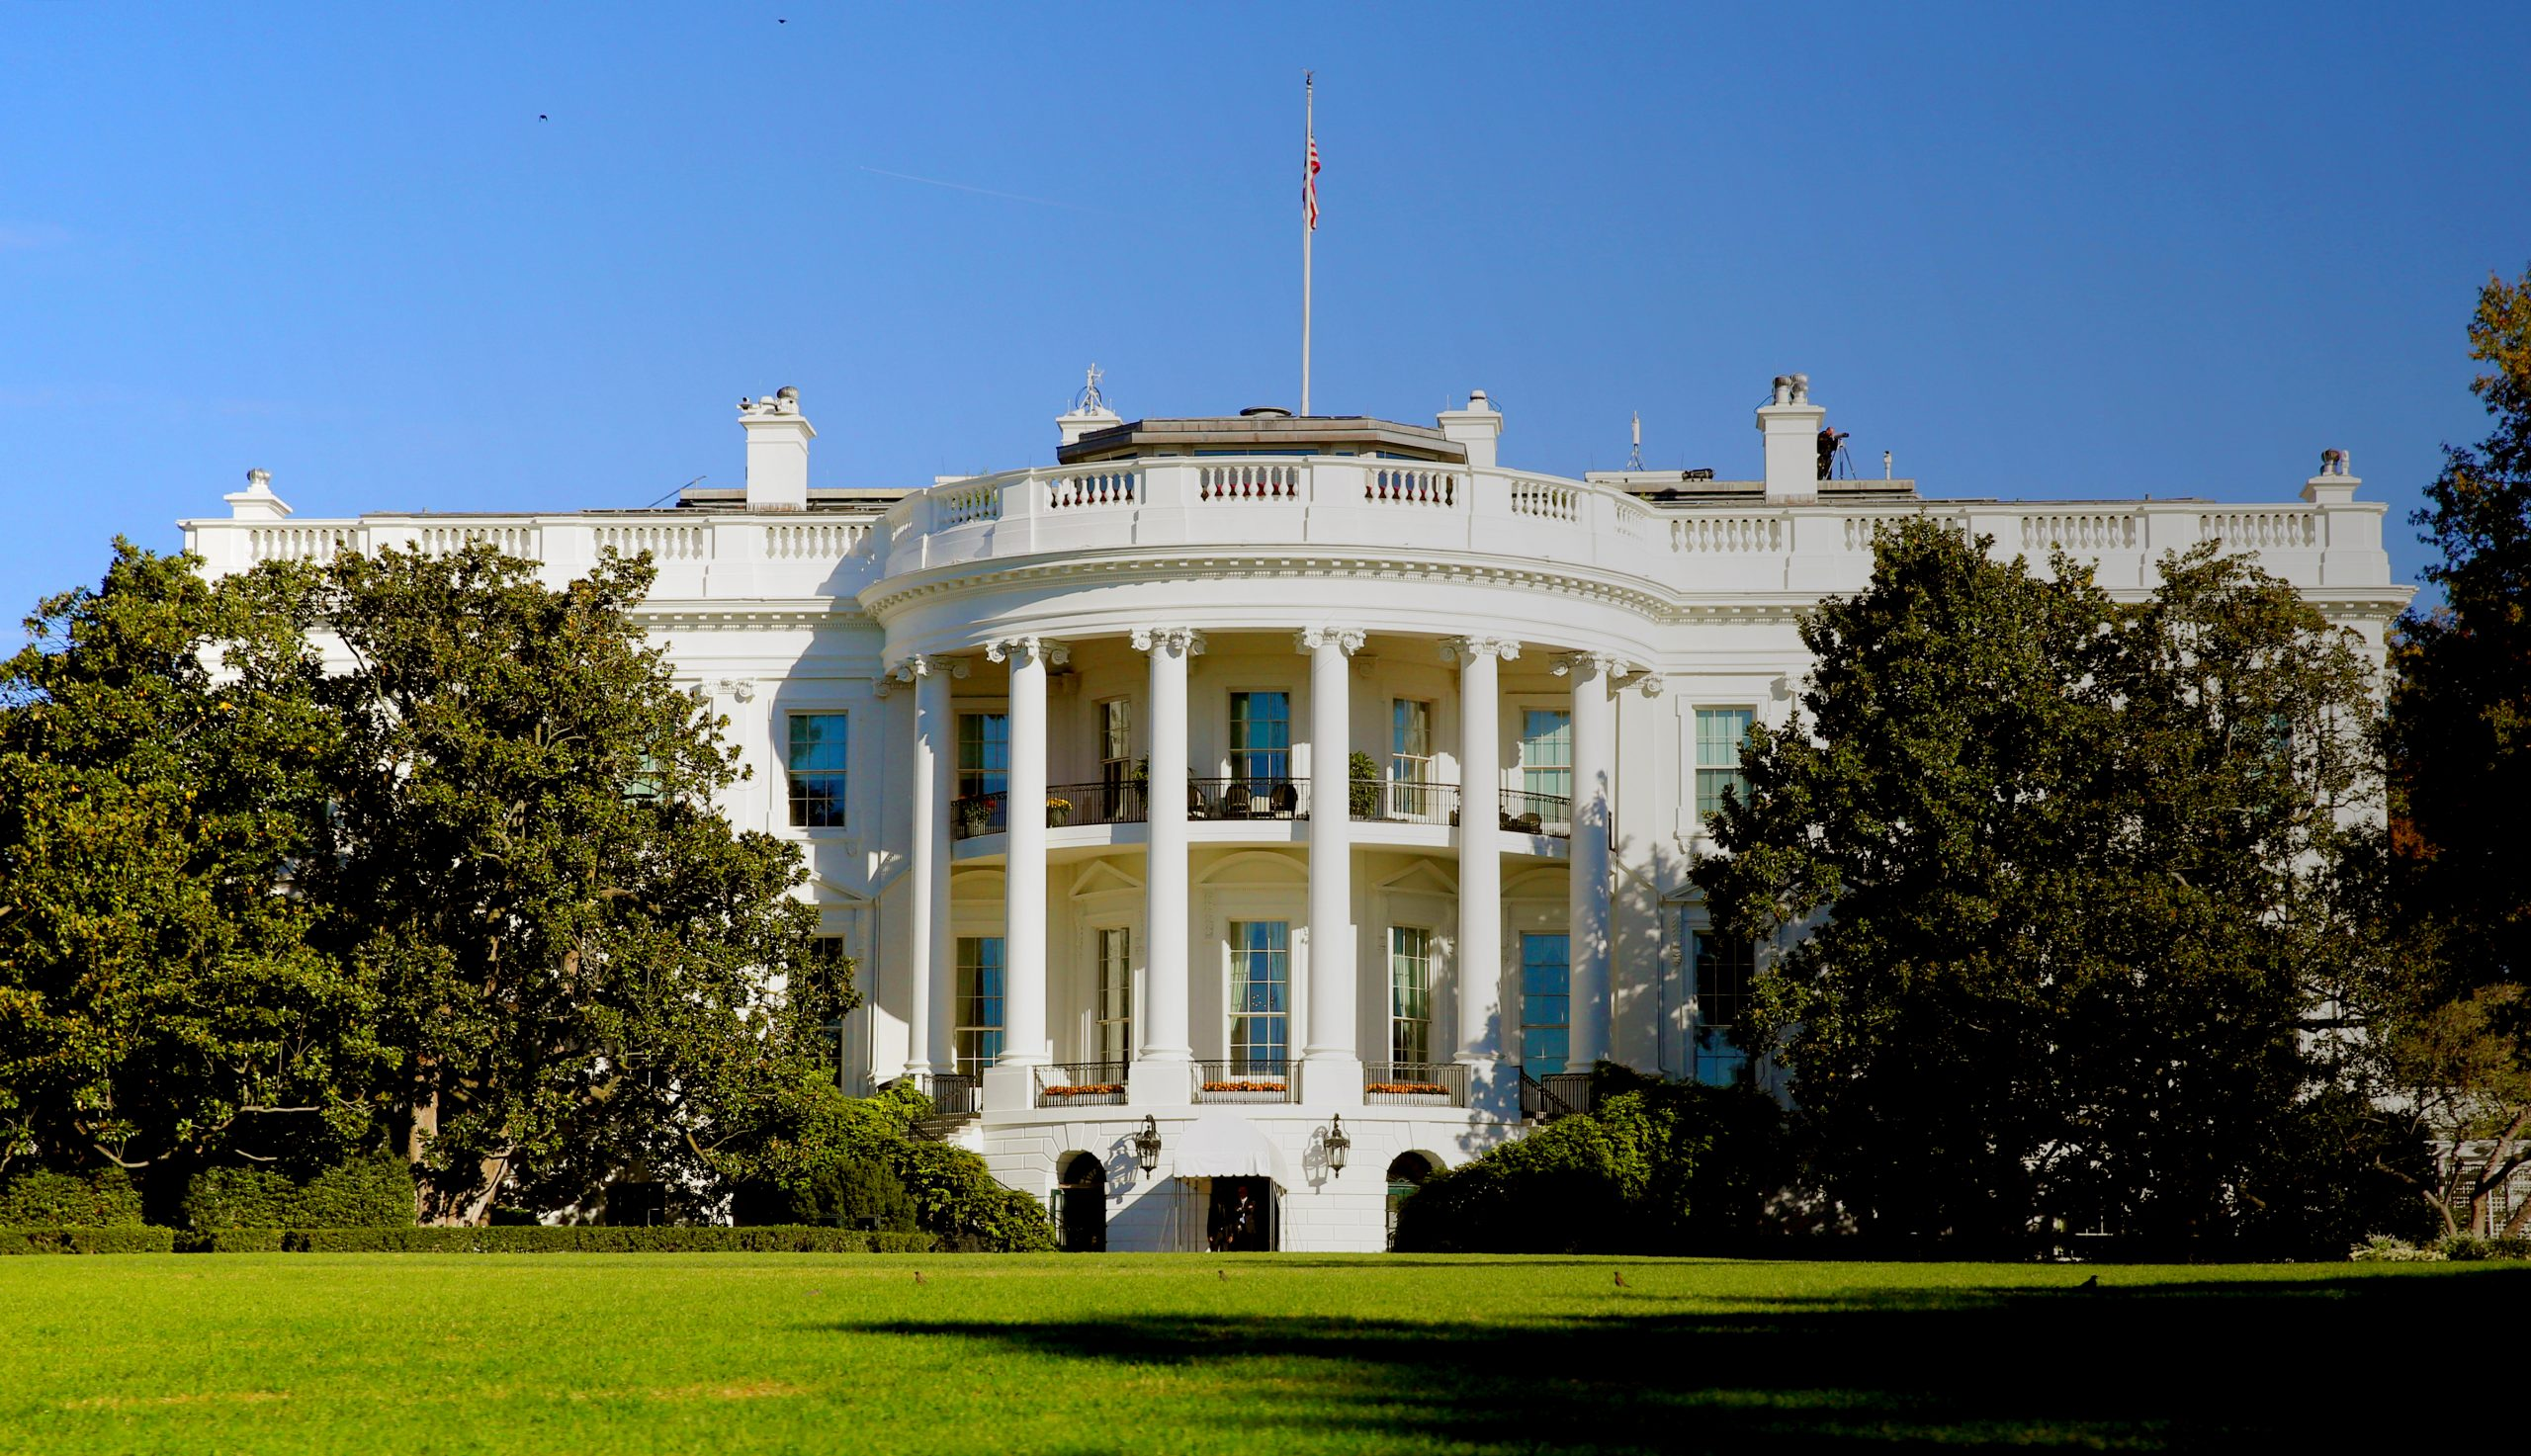 Working in the White House could be unsafe, Kevin Hassett says